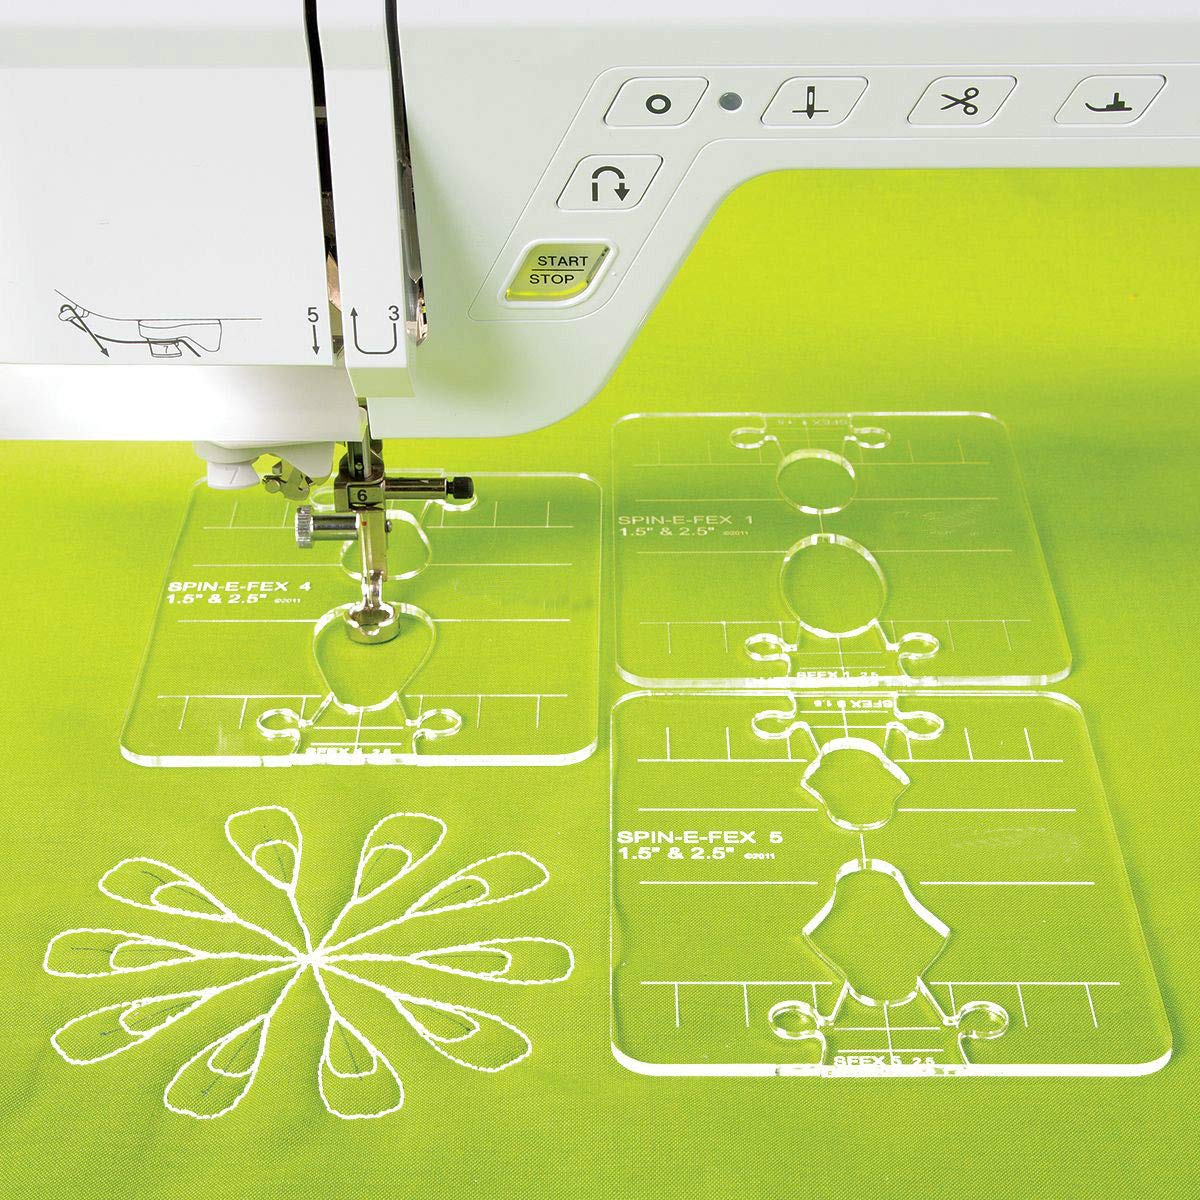 YICBOR Spin-E-FEX Feather 8 Collection a Set of 4 Templates for Low Shank Domestic Sewing Machines # SF-4# 1 Set=4 pcs